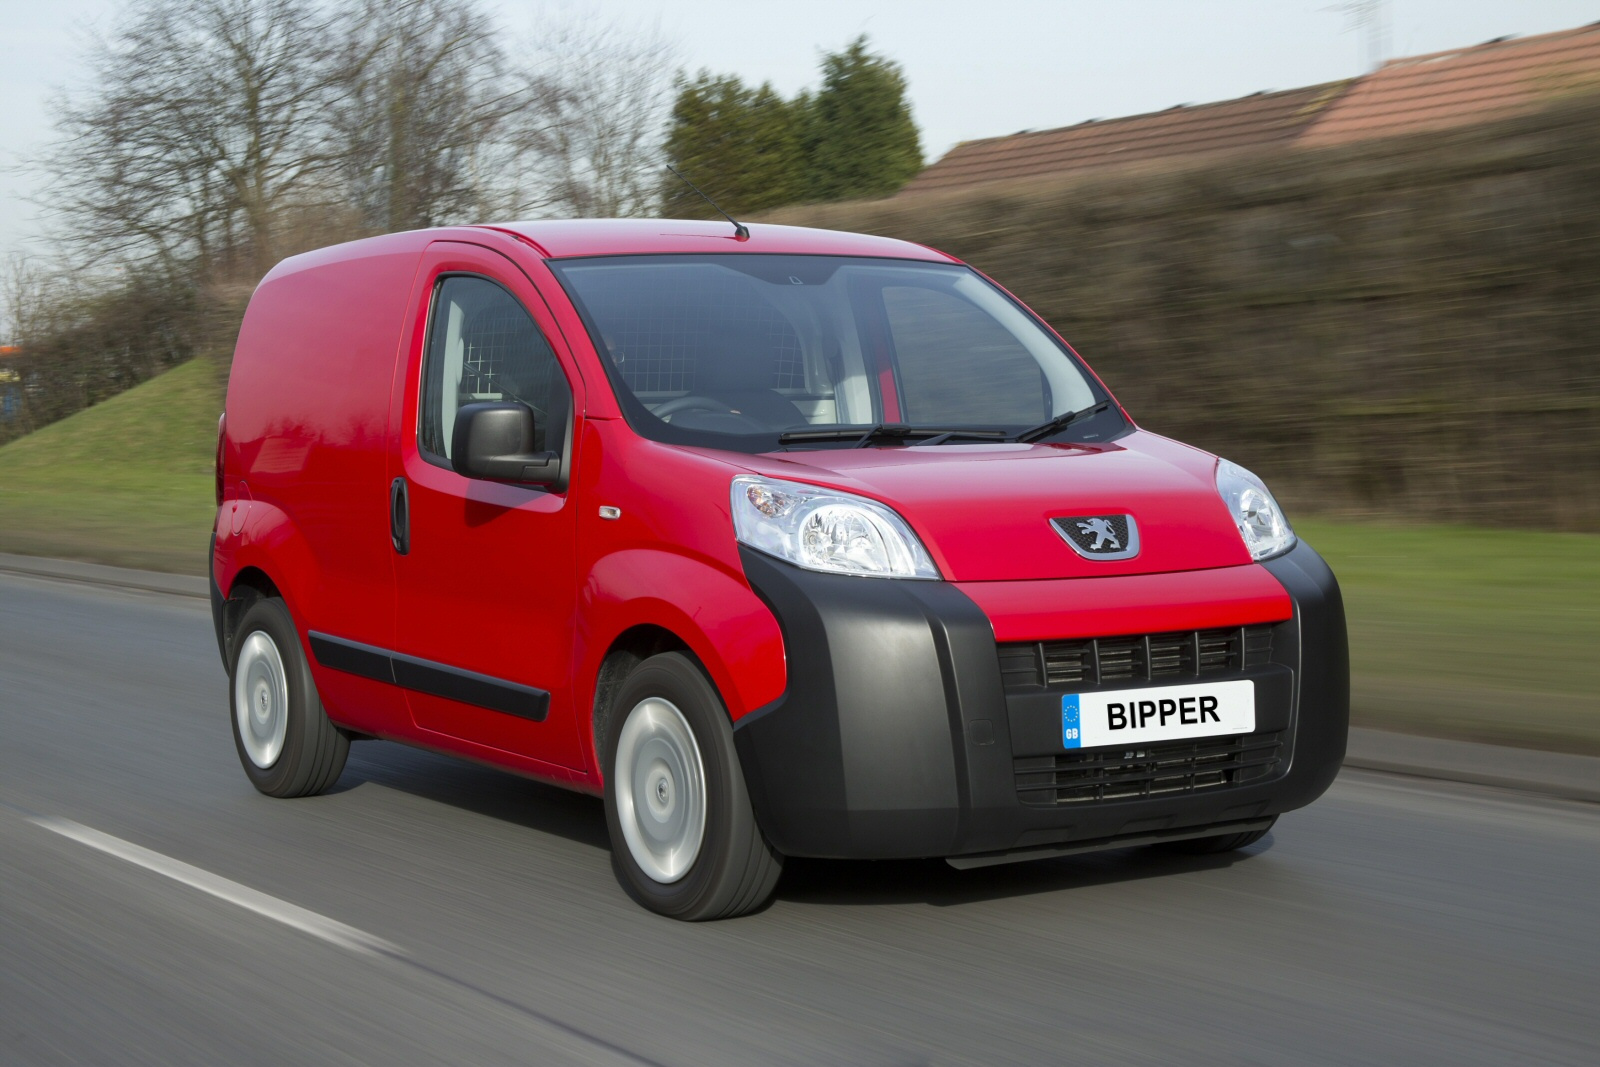 new peugeot bipper van 1 3 hdi 80 s robins and day. Black Bedroom Furniture Sets. Home Design Ideas